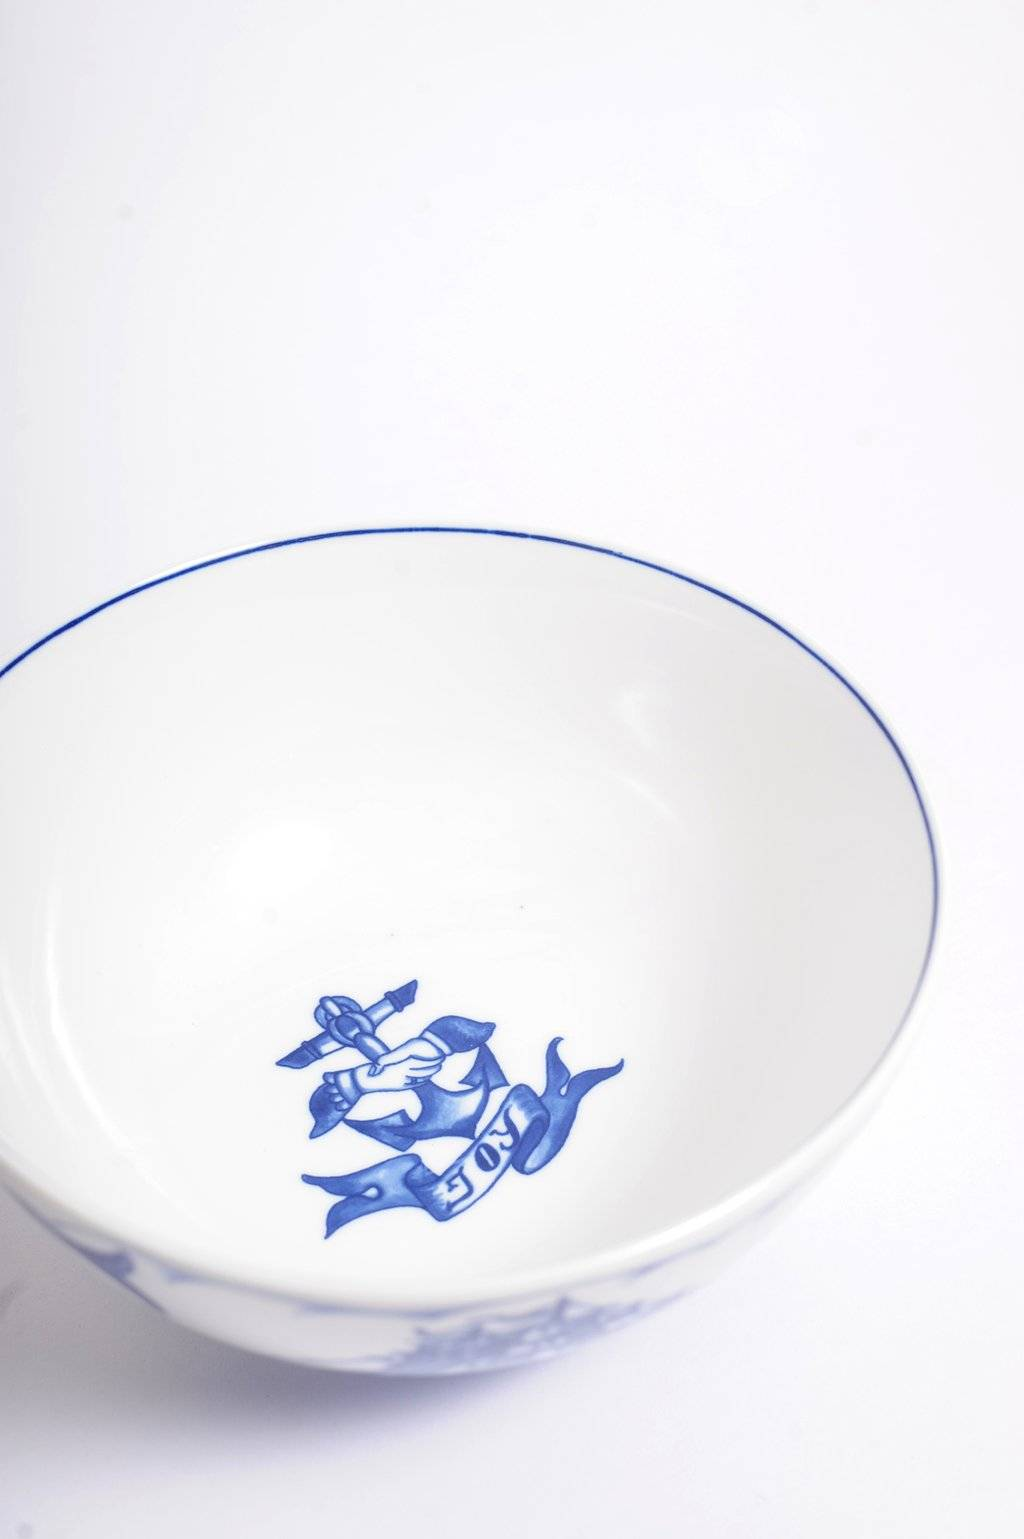 The By Mutti Blue Marlin Bowl